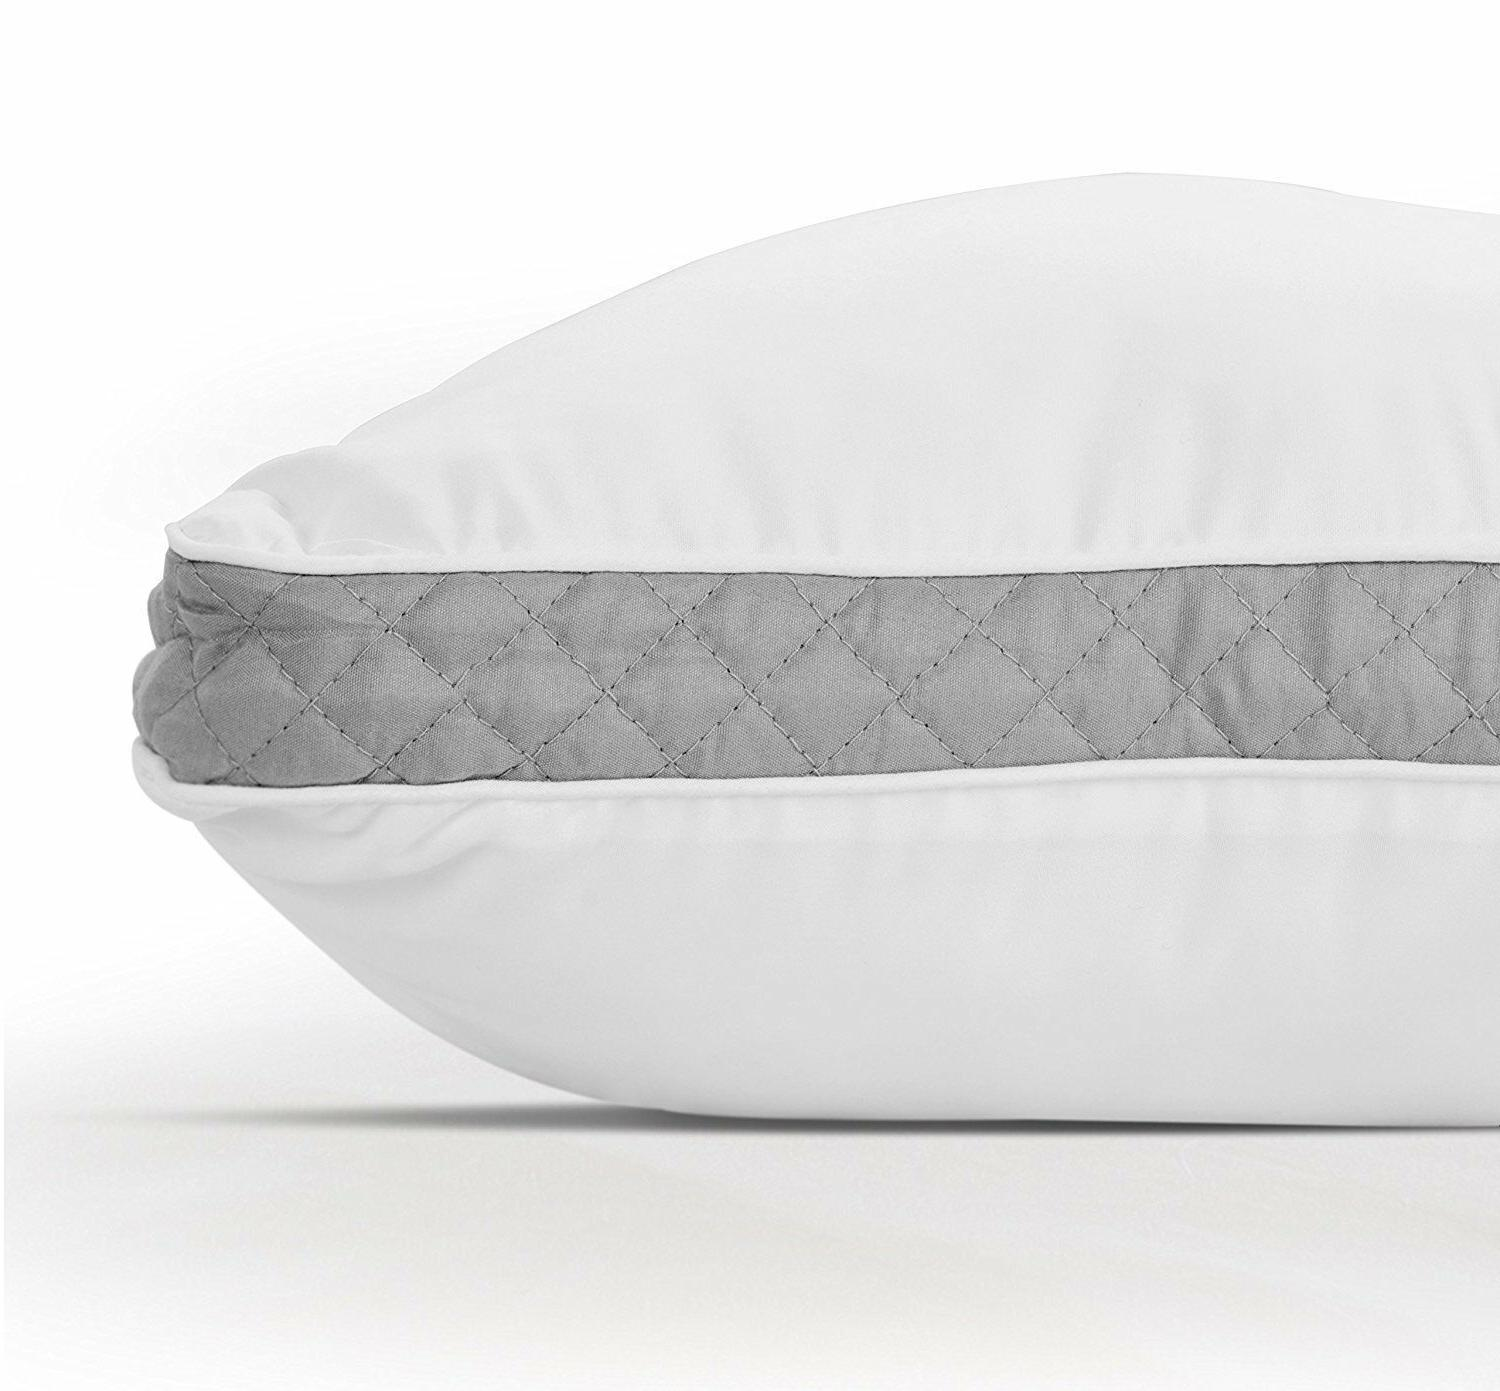 Gusseted of Bed Pillows Side Sleepers Utopia Bedding